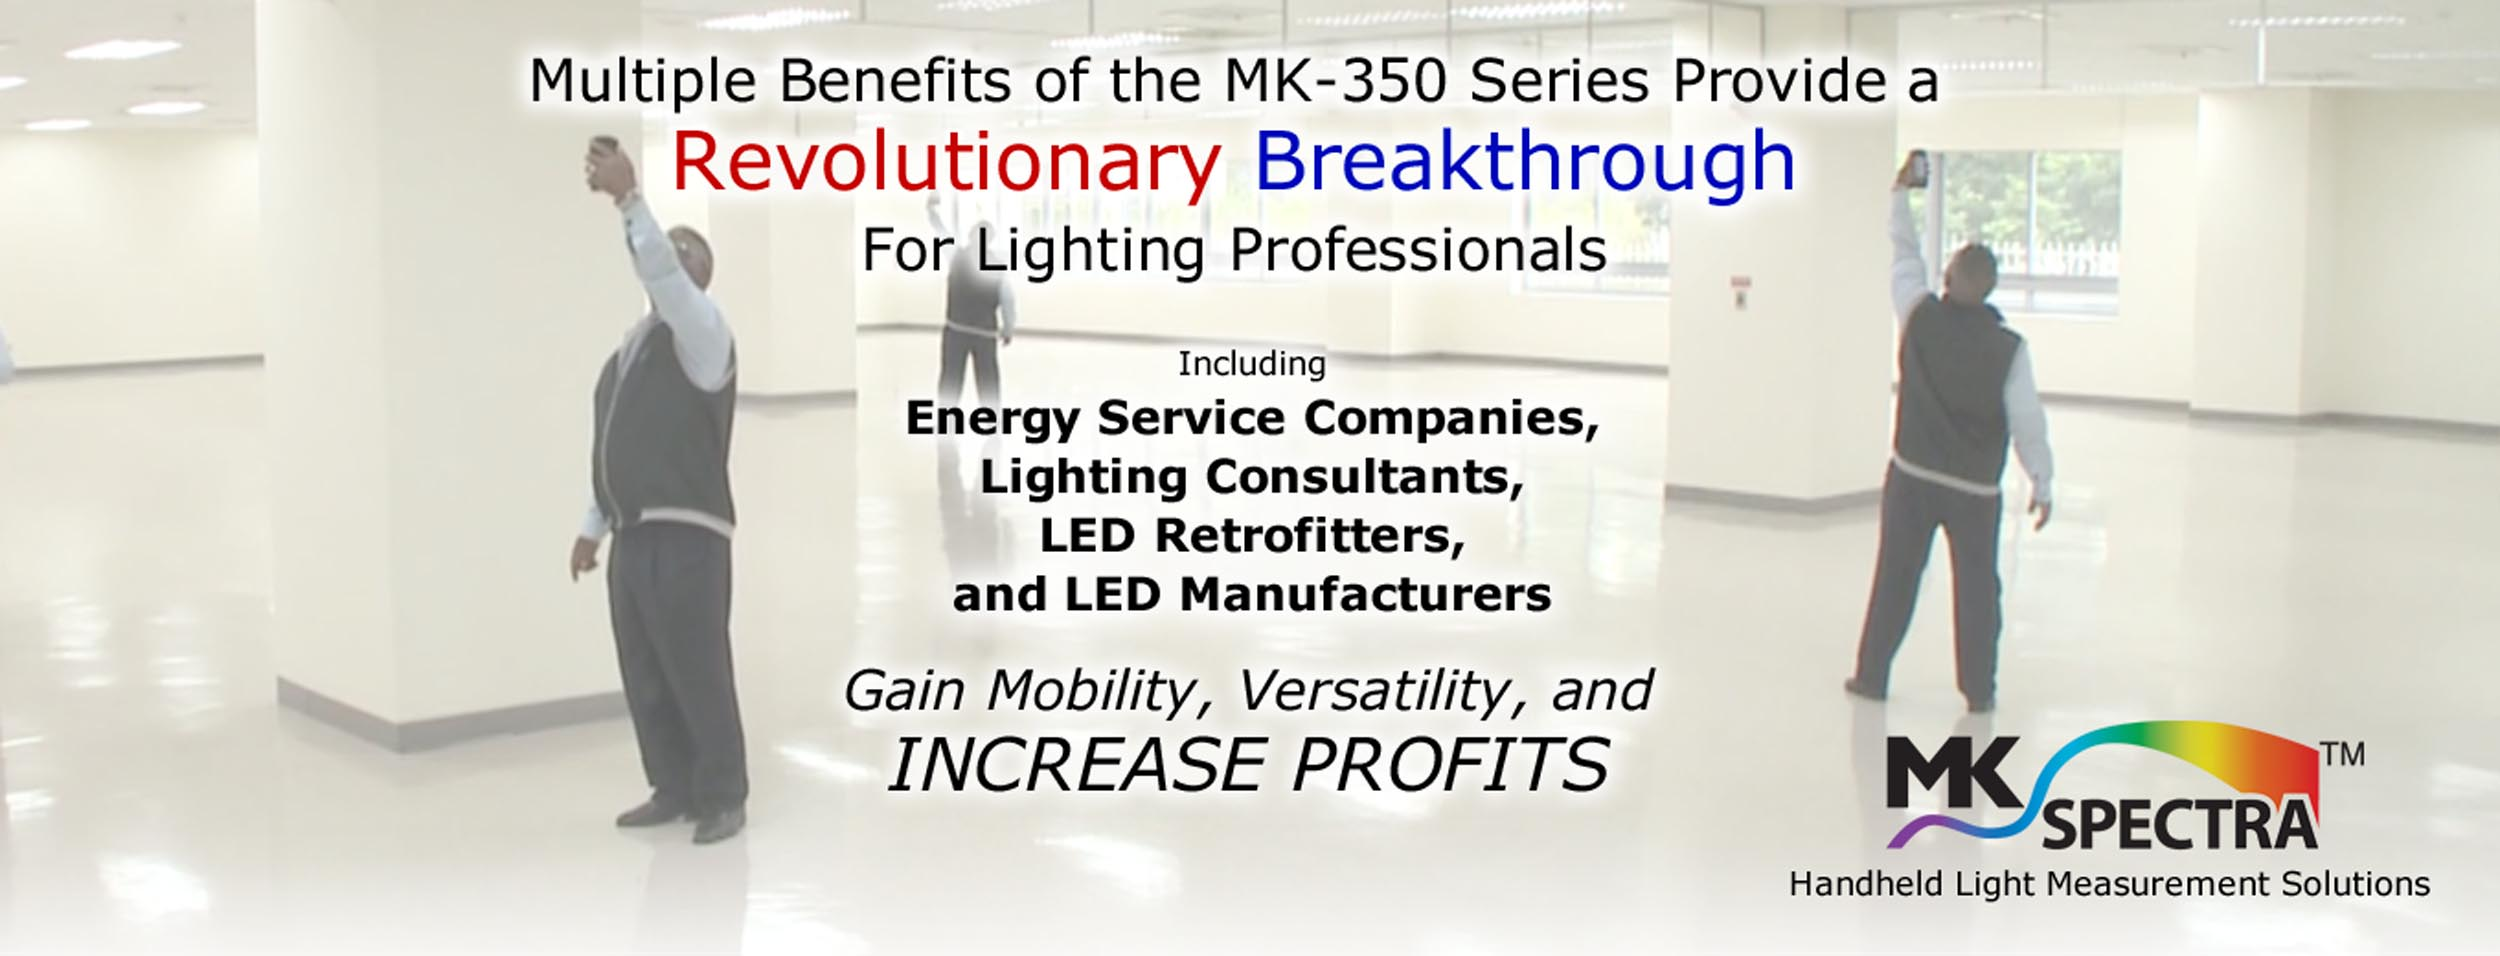 MK Spectra: Multiple benefits provide a revolutionary breakthrough